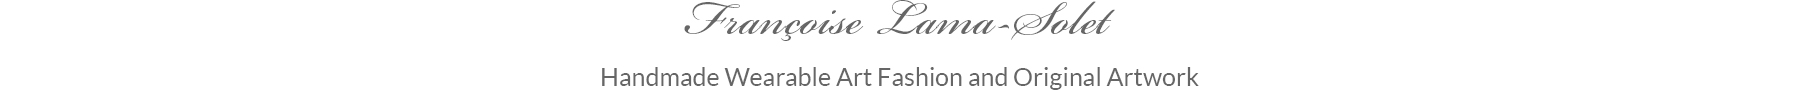 Francoise Lama-Solet Fashion Boutique